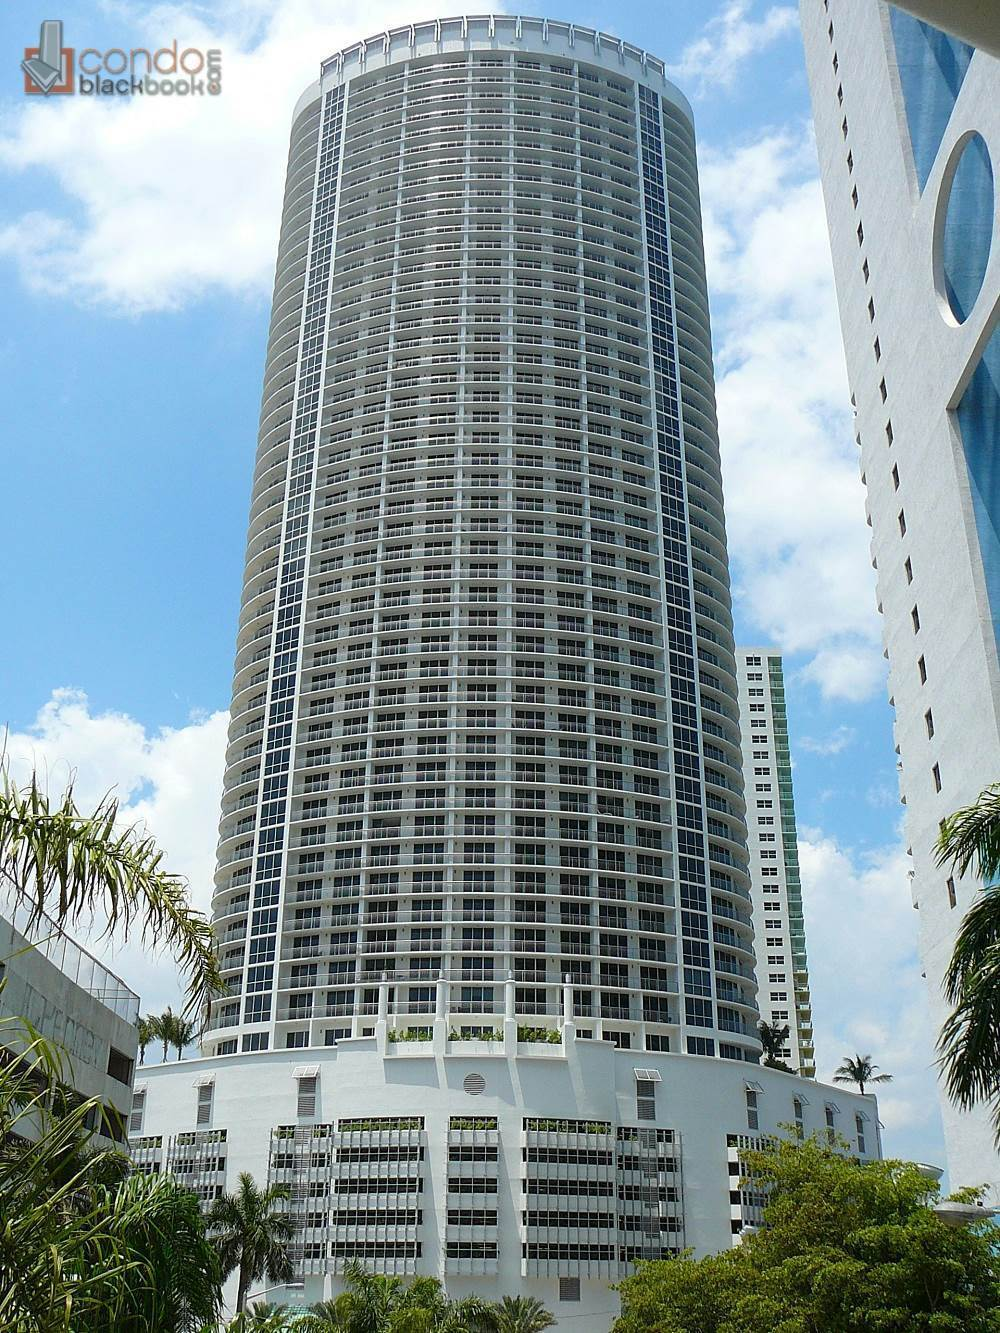 Building in Miami, Downtown Miami, Opera Tower